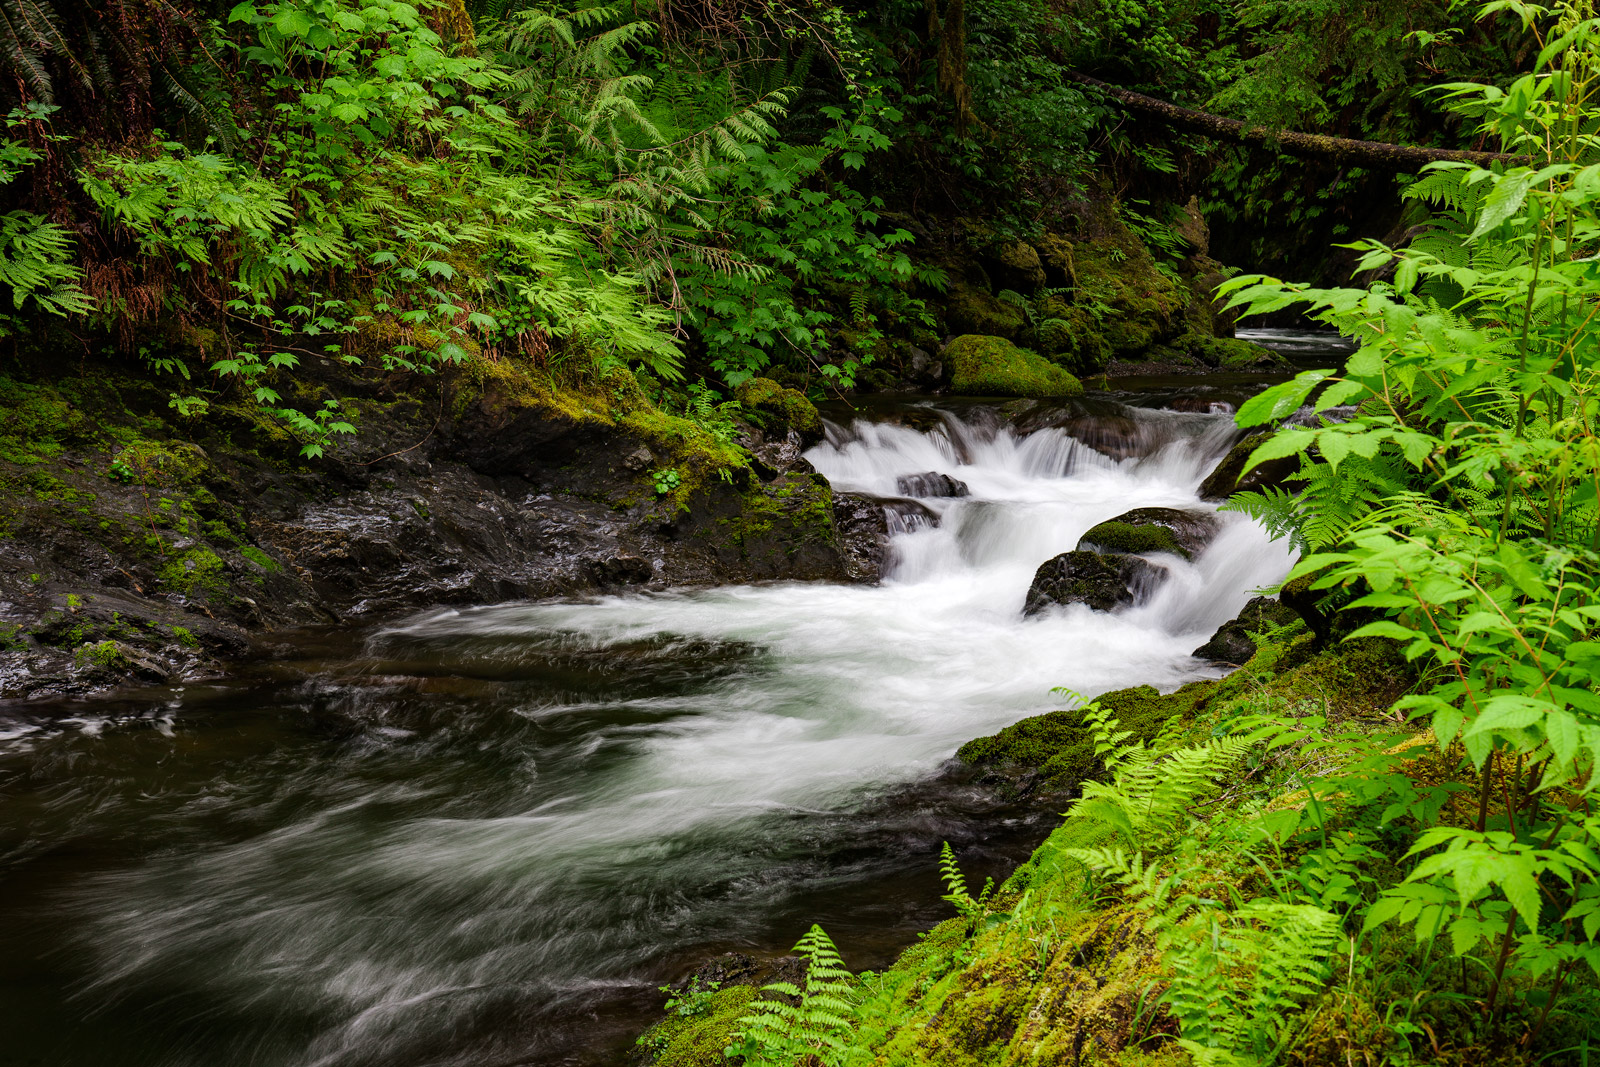 A Limited Edition, Fine Art photograph of a river flowing through the Quinault Rainforest in Olympic National Park, Washington...